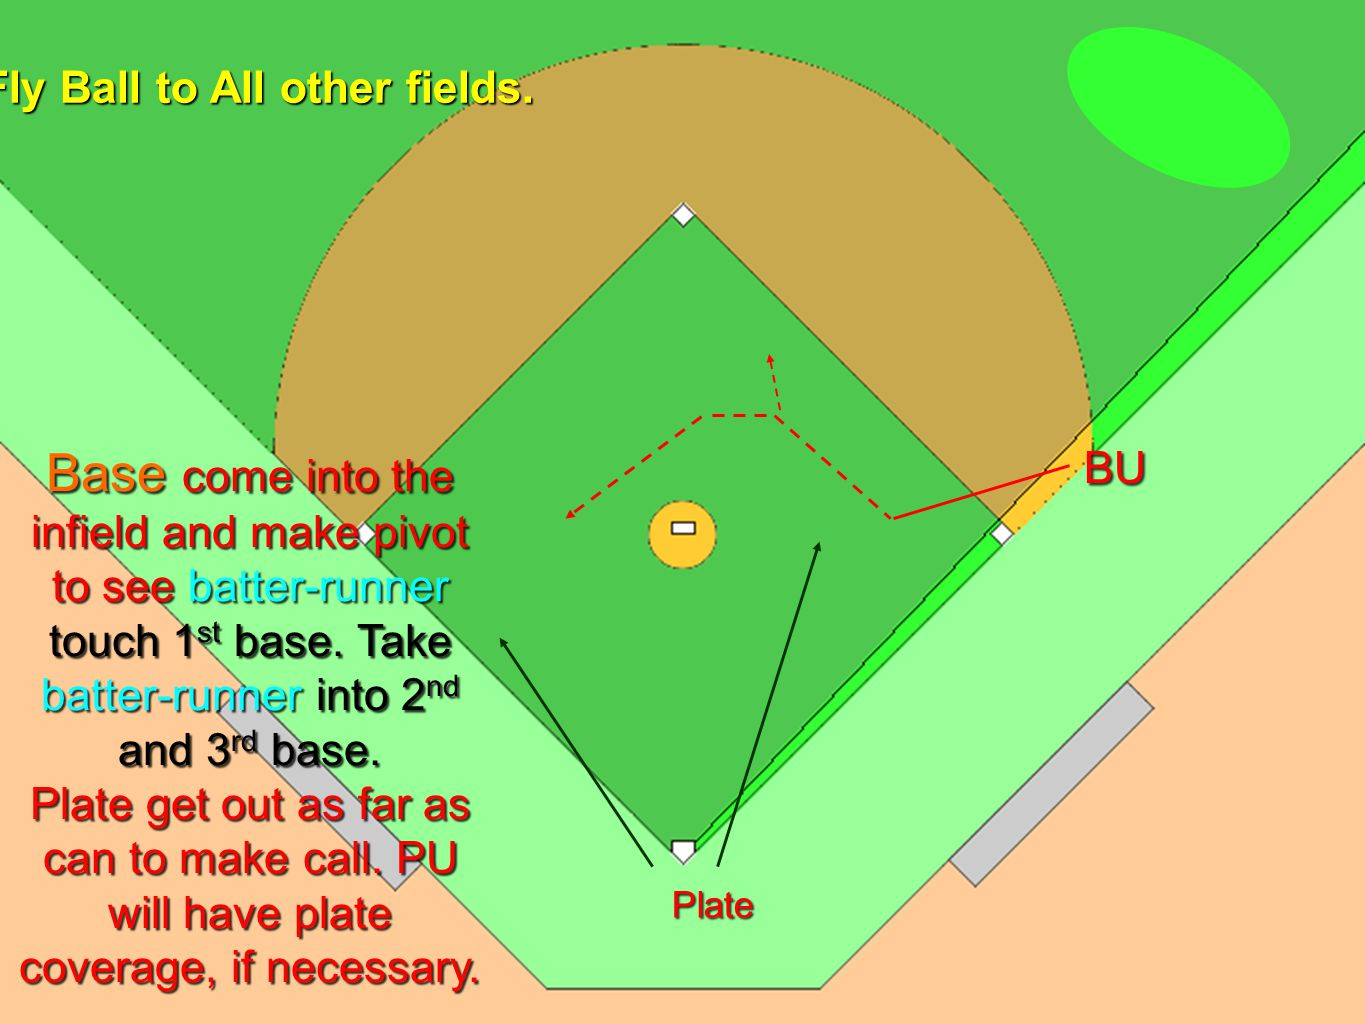 U1 U2U3 Situation 3 No one on base Fly ball hit to the outfield other than down right field line, or in short right or center field.